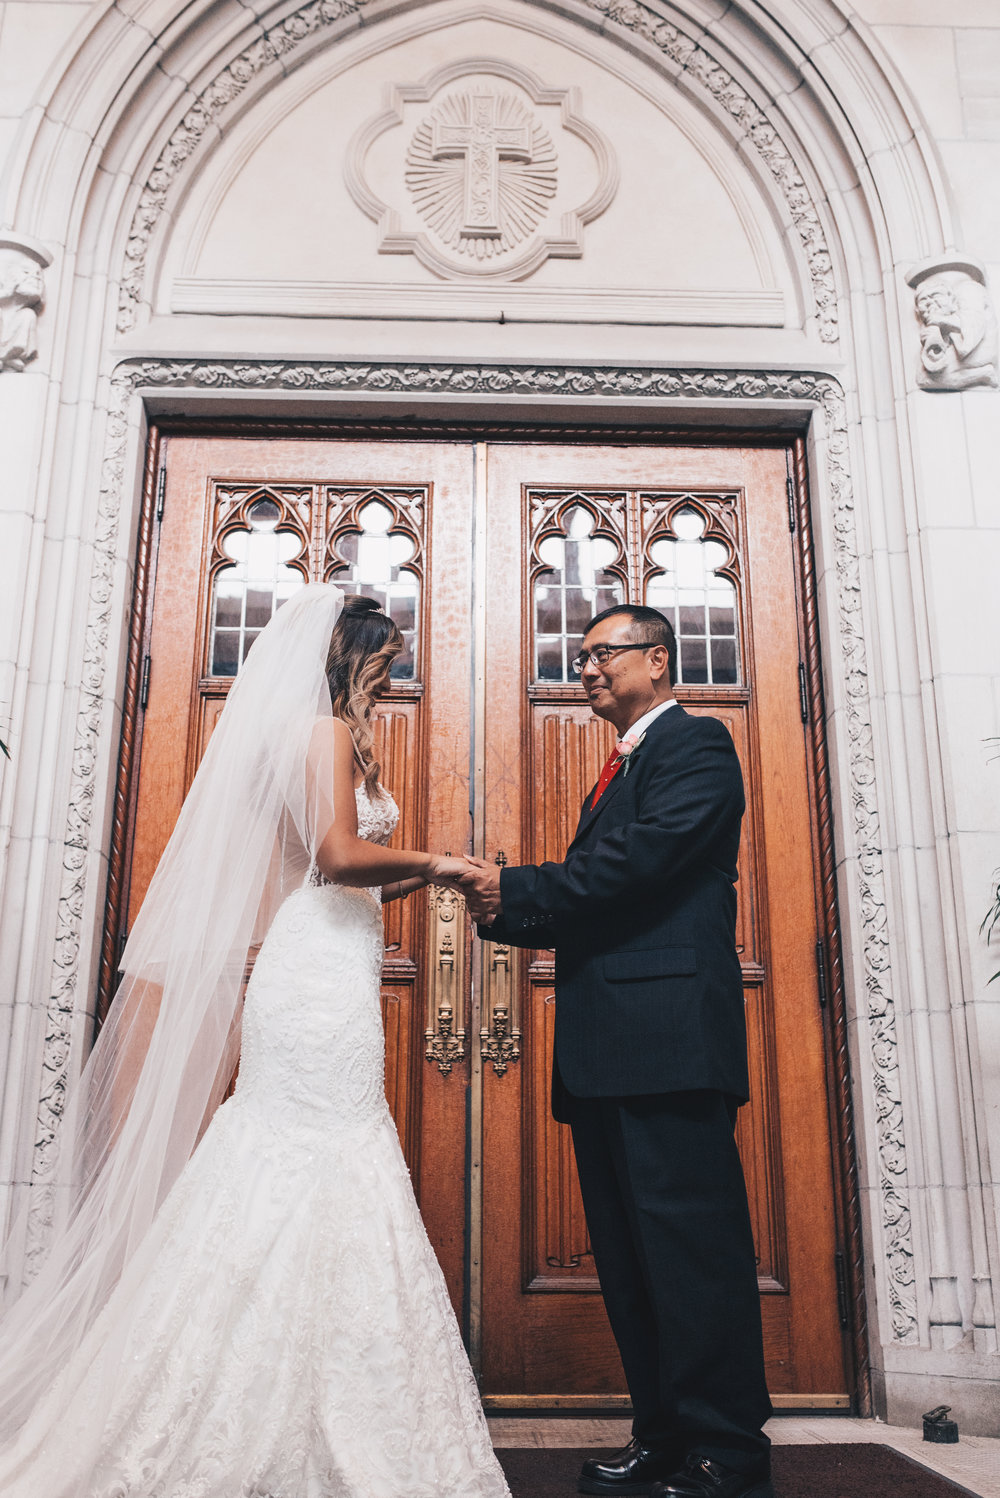 Chicago Bride and Groom Photos, Chicago Wedding, Chicago Wedding Photographer, Chicago Elopement Photographer, Father and Bride First Look